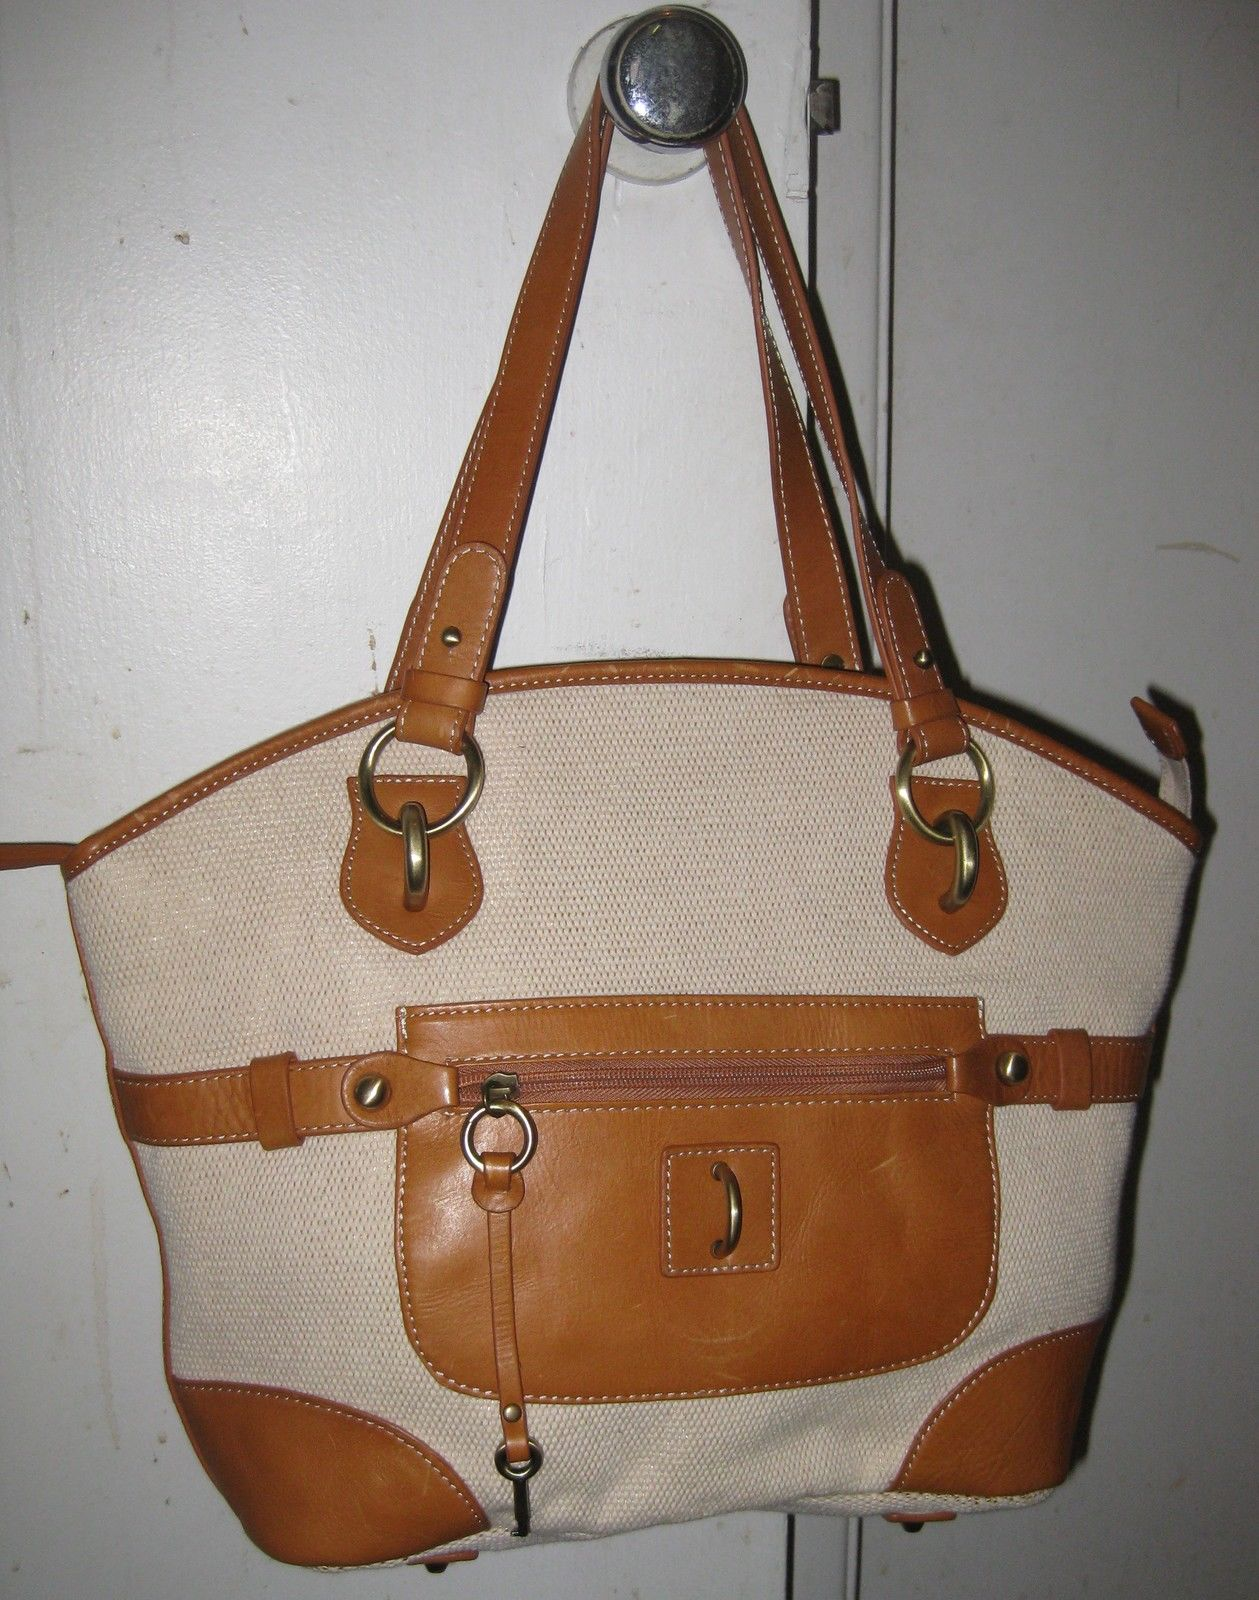 GIANI BERNINI SHOULDER HANDBAG TEXTILE WITH GENUINE LEATHER TRIM, LARGE.